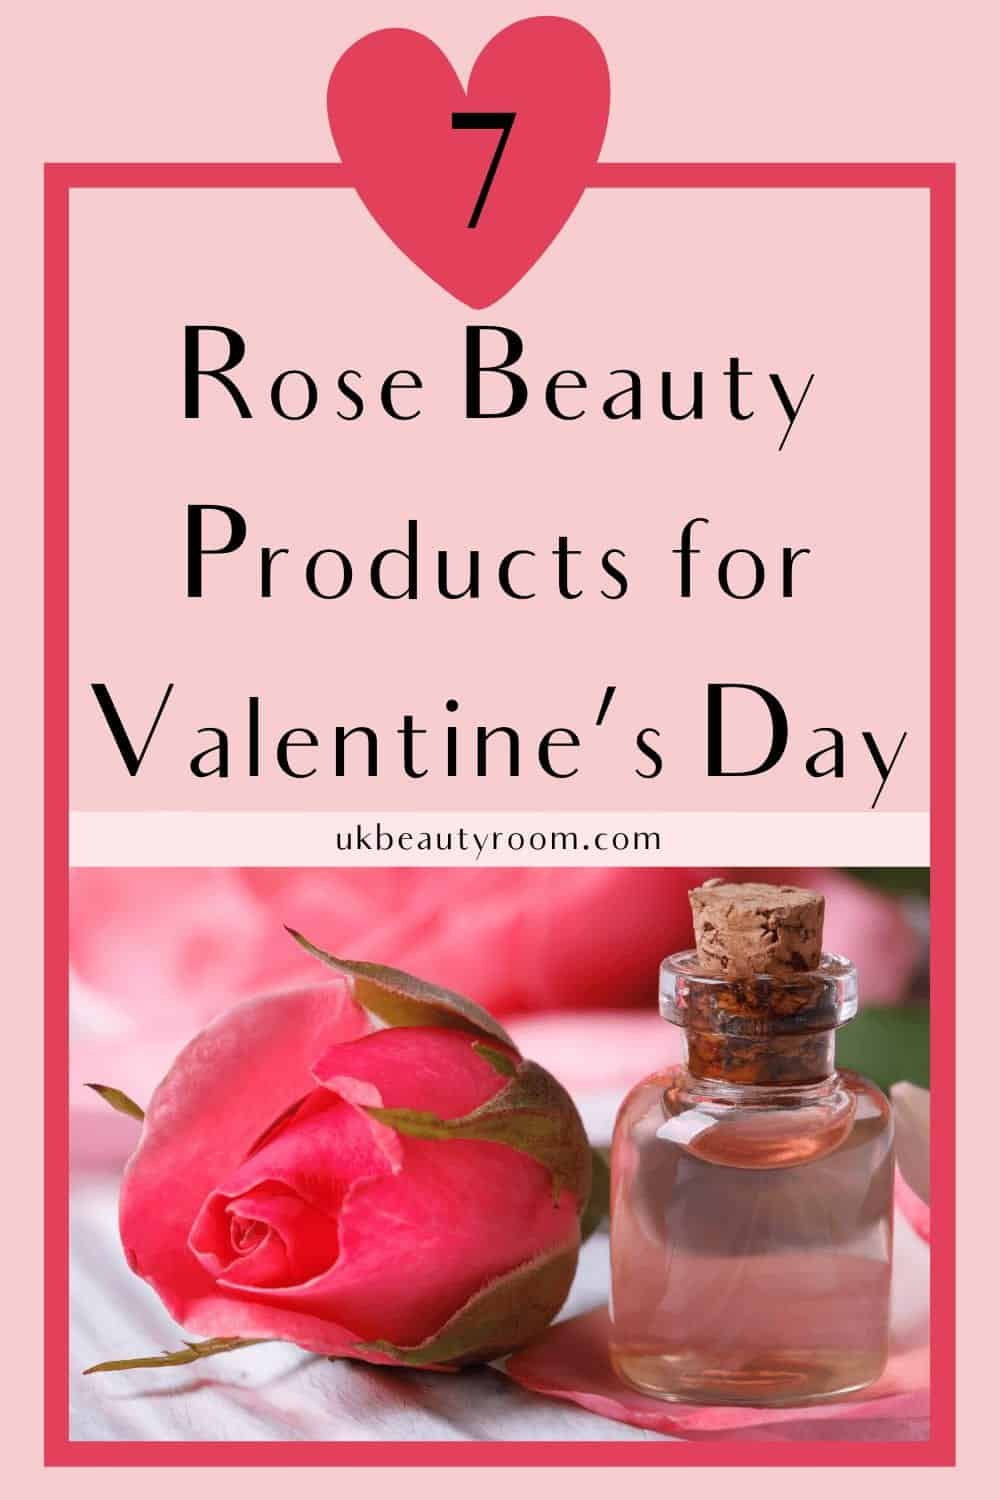 These rose beauty products are perfect gift ideas for Valentine's Day.  If you are looking for something special and unique these are classic luxury products that would make ideal gifts for him or her.  Instead of buying flowers these rose products will last much longer